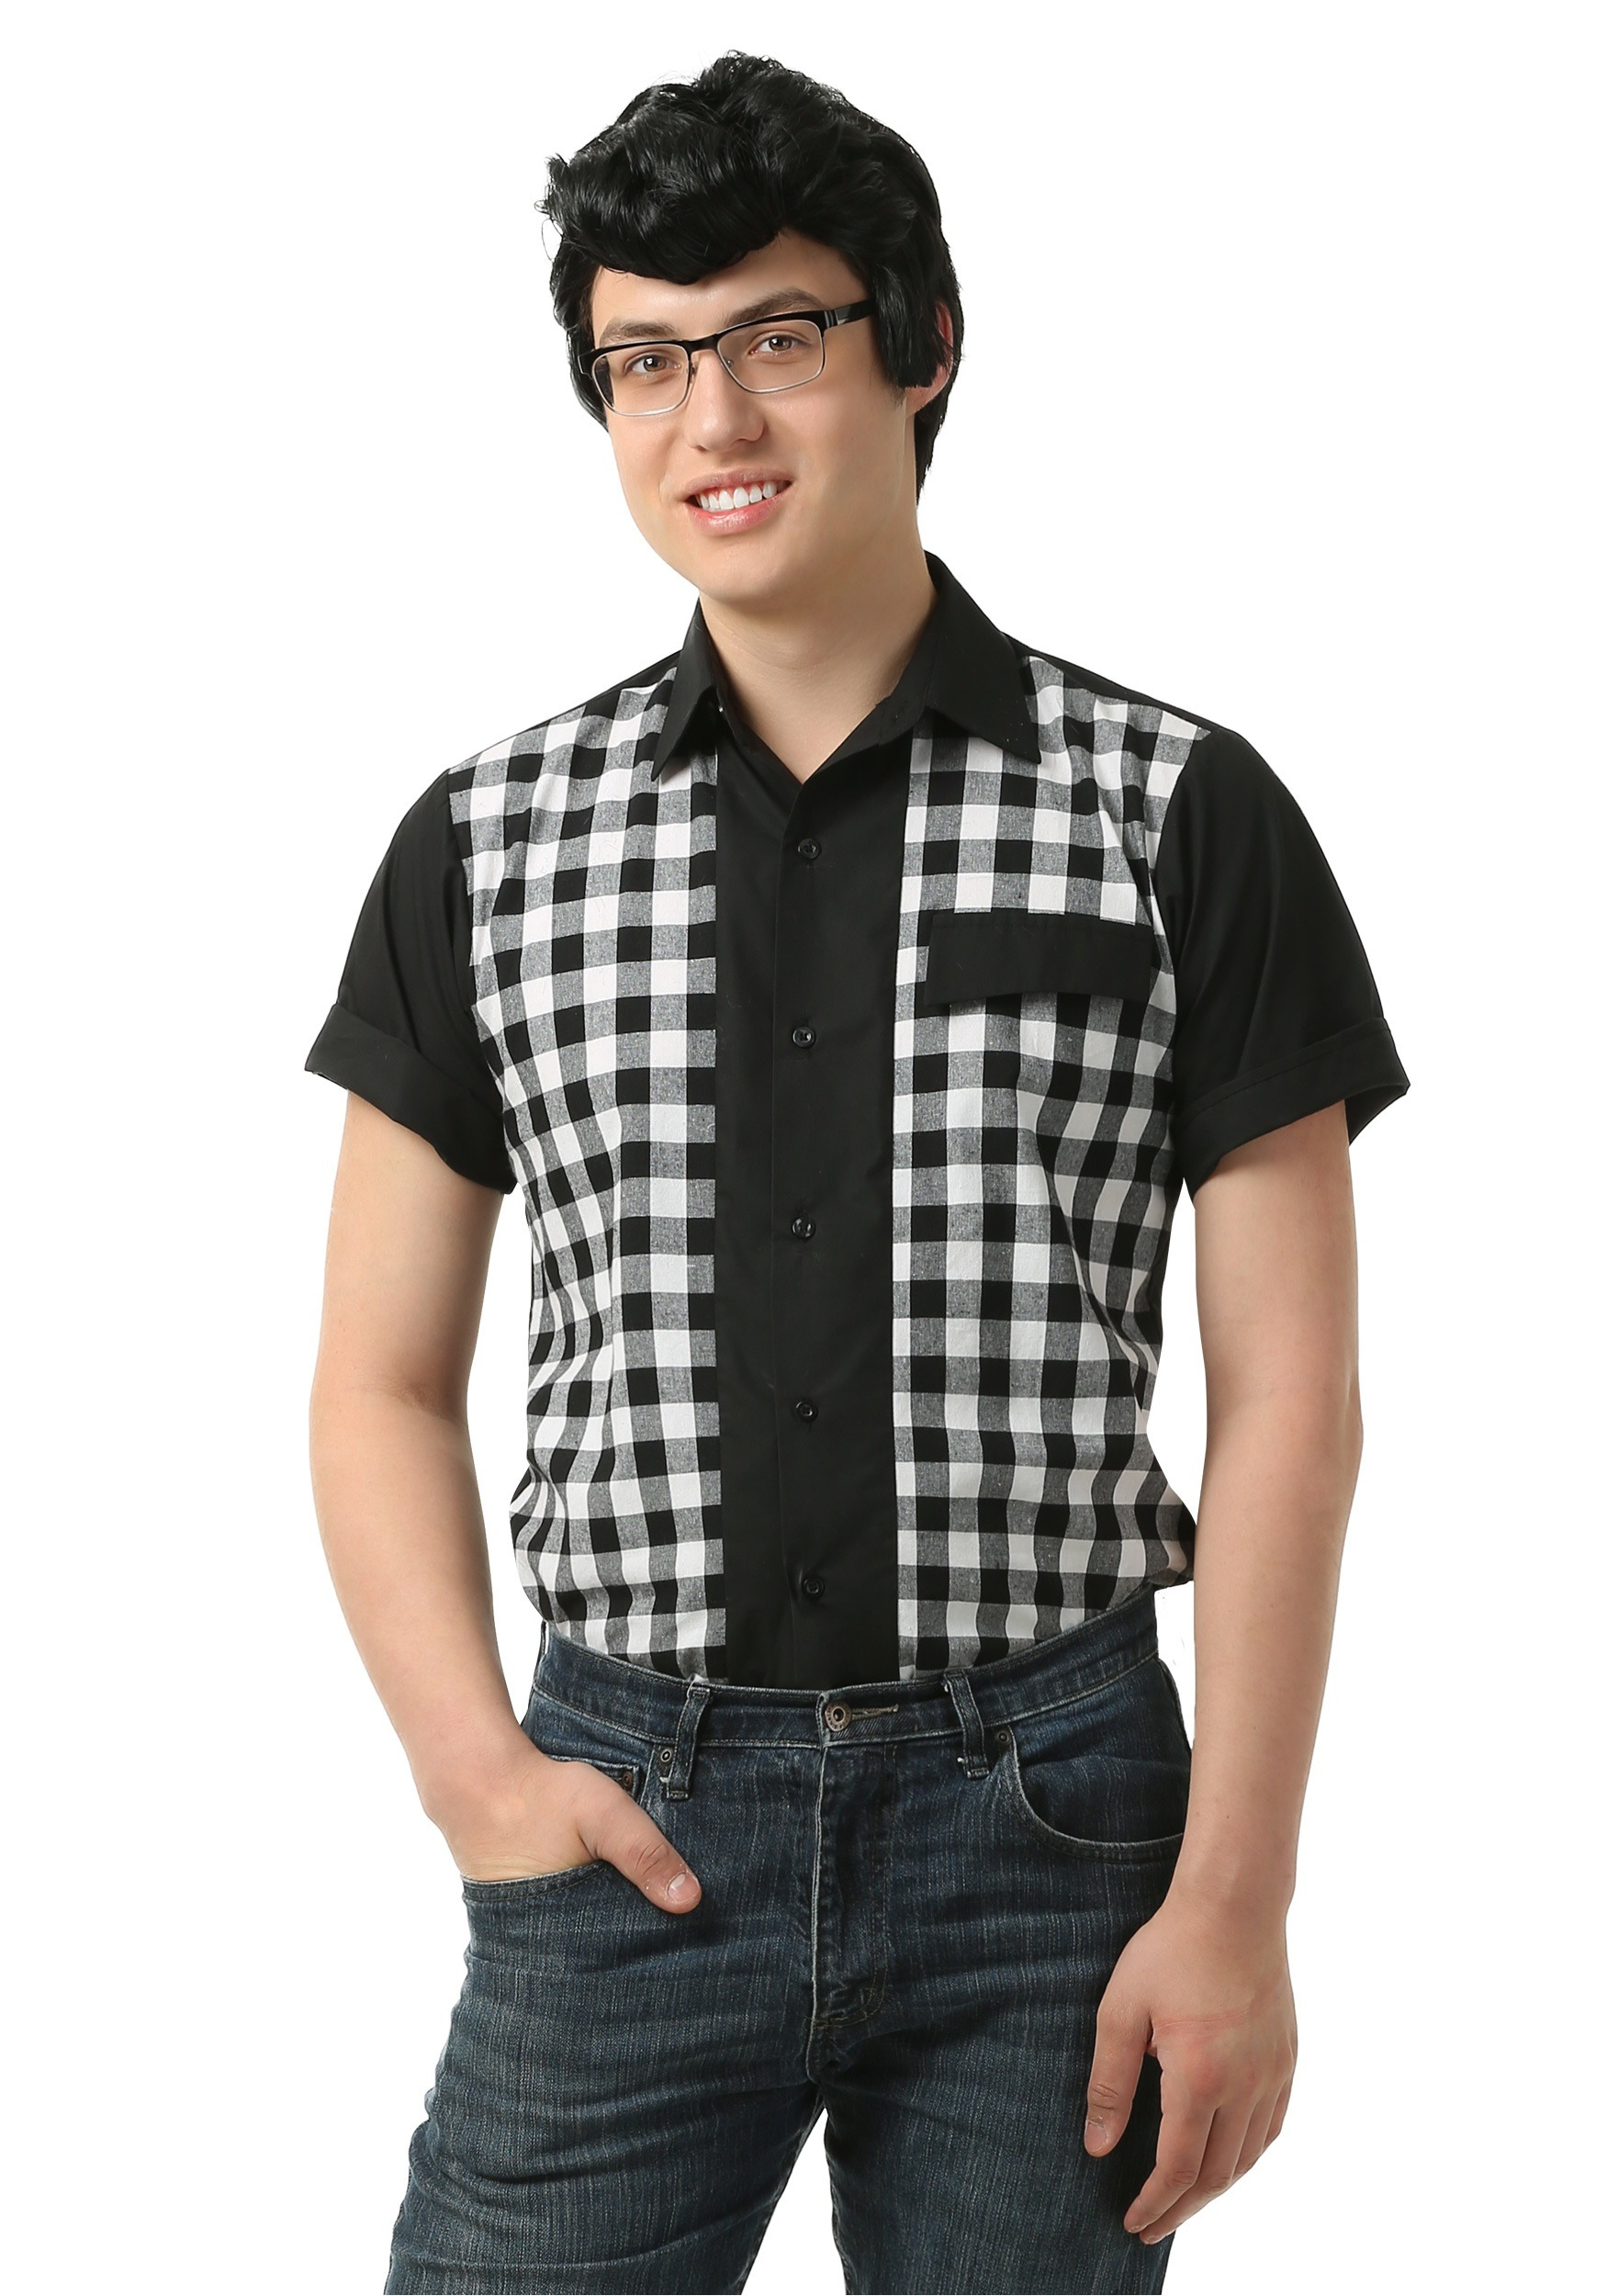 Men's 50s Bowler Shirt